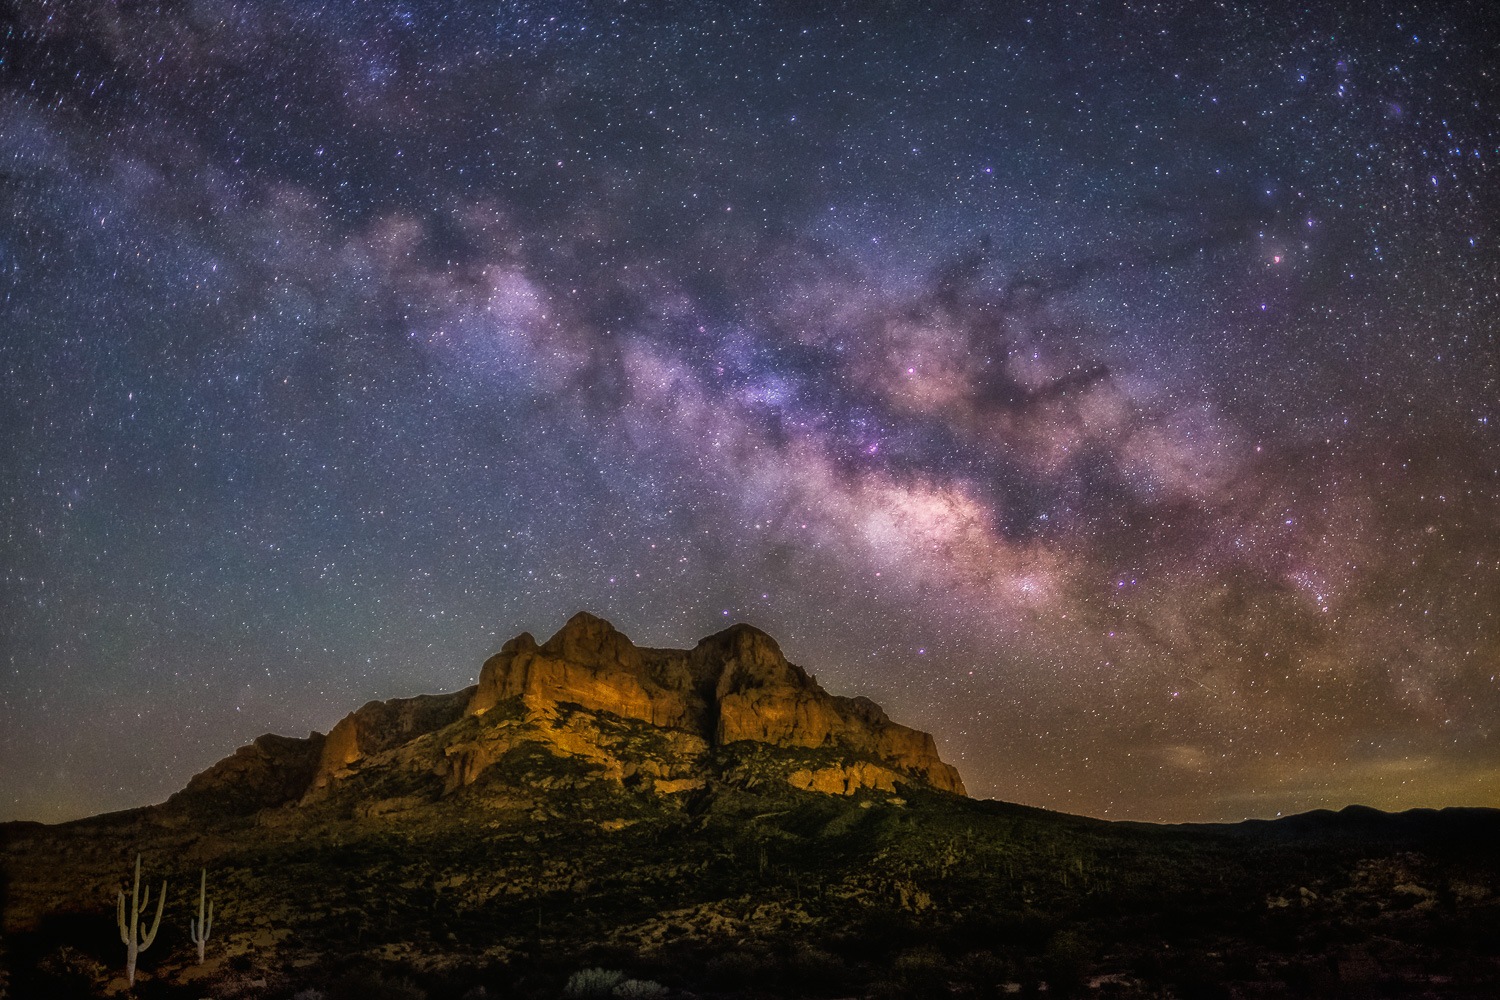 """""""Picketpost Mountain Milky Way"""" - This area just east of Phoenix offered some surprisingly dark night skies for capturing the Milky Way on March 9, 2017. This was less than 24 hours after spending the night at Monument Rocks."""